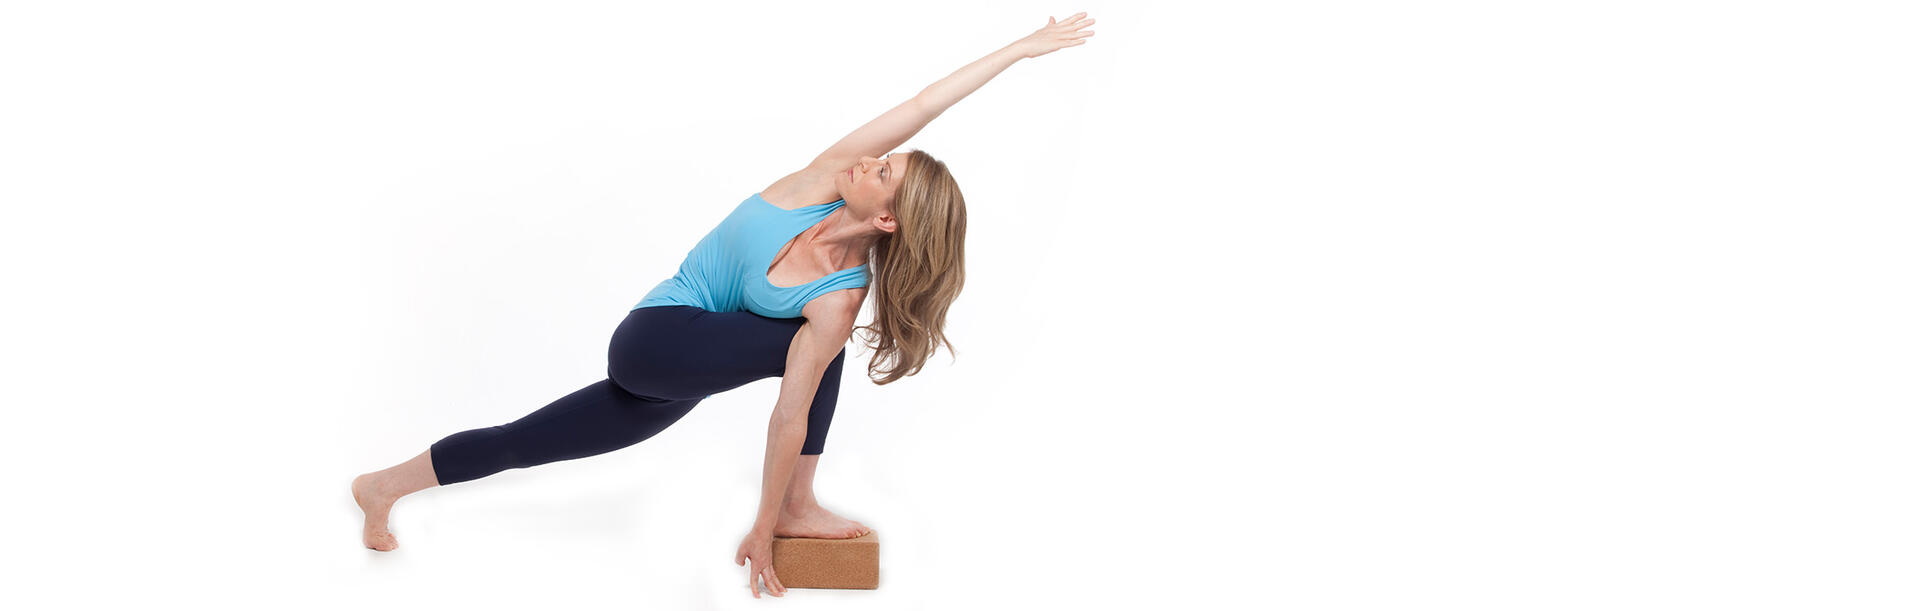 Yoga Tune Up At Home Program